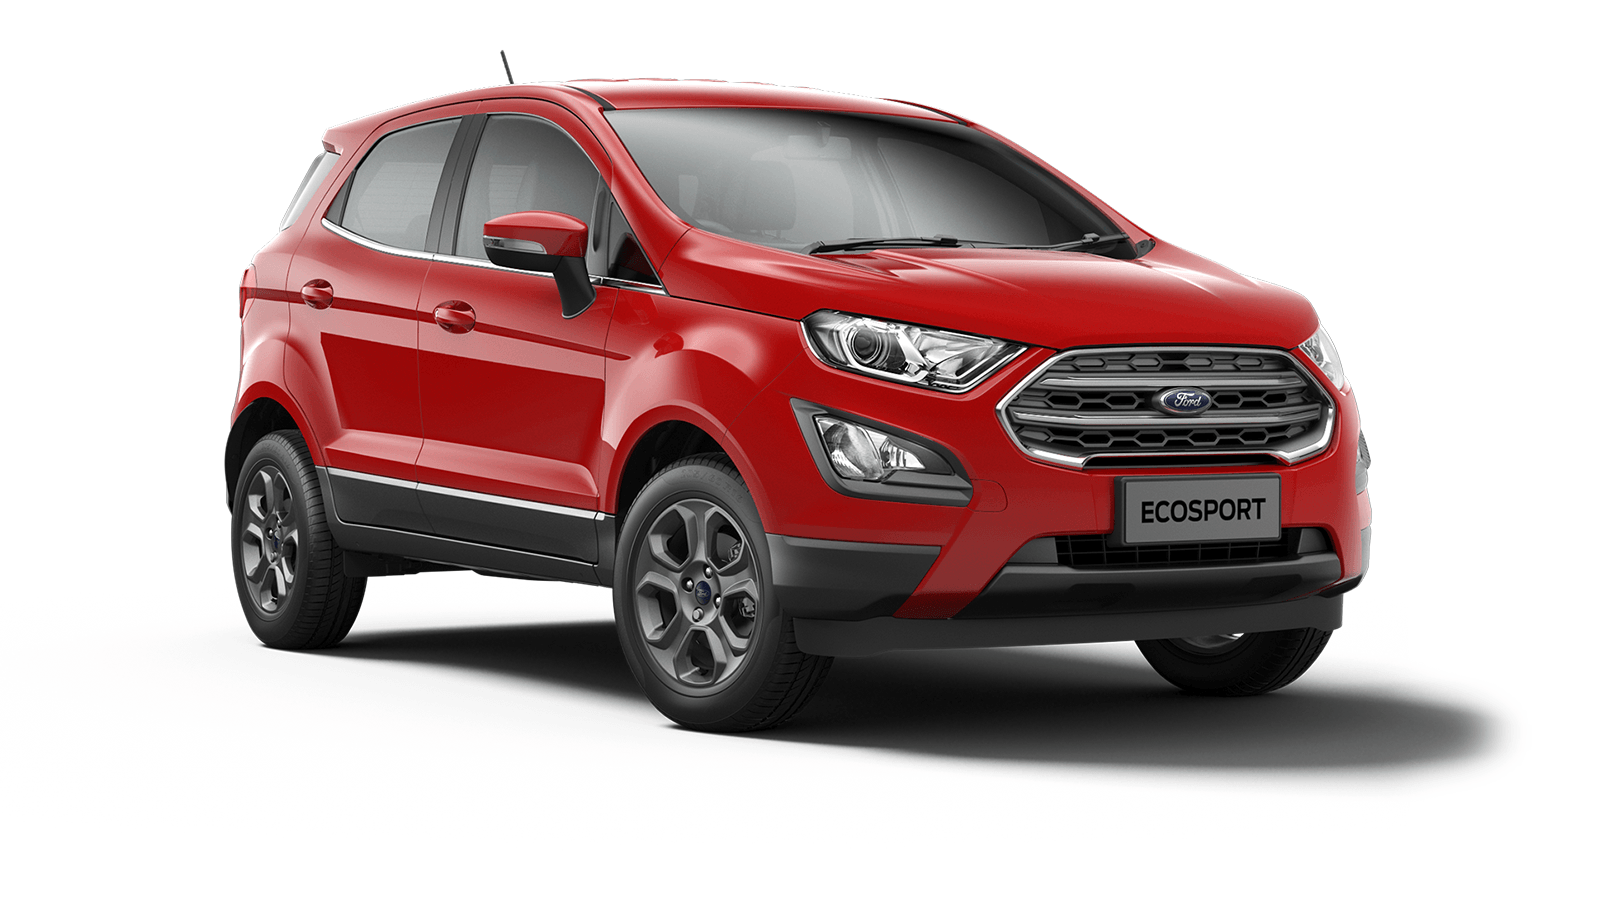 ECOSPORT Zetec 5 Door in Race Red